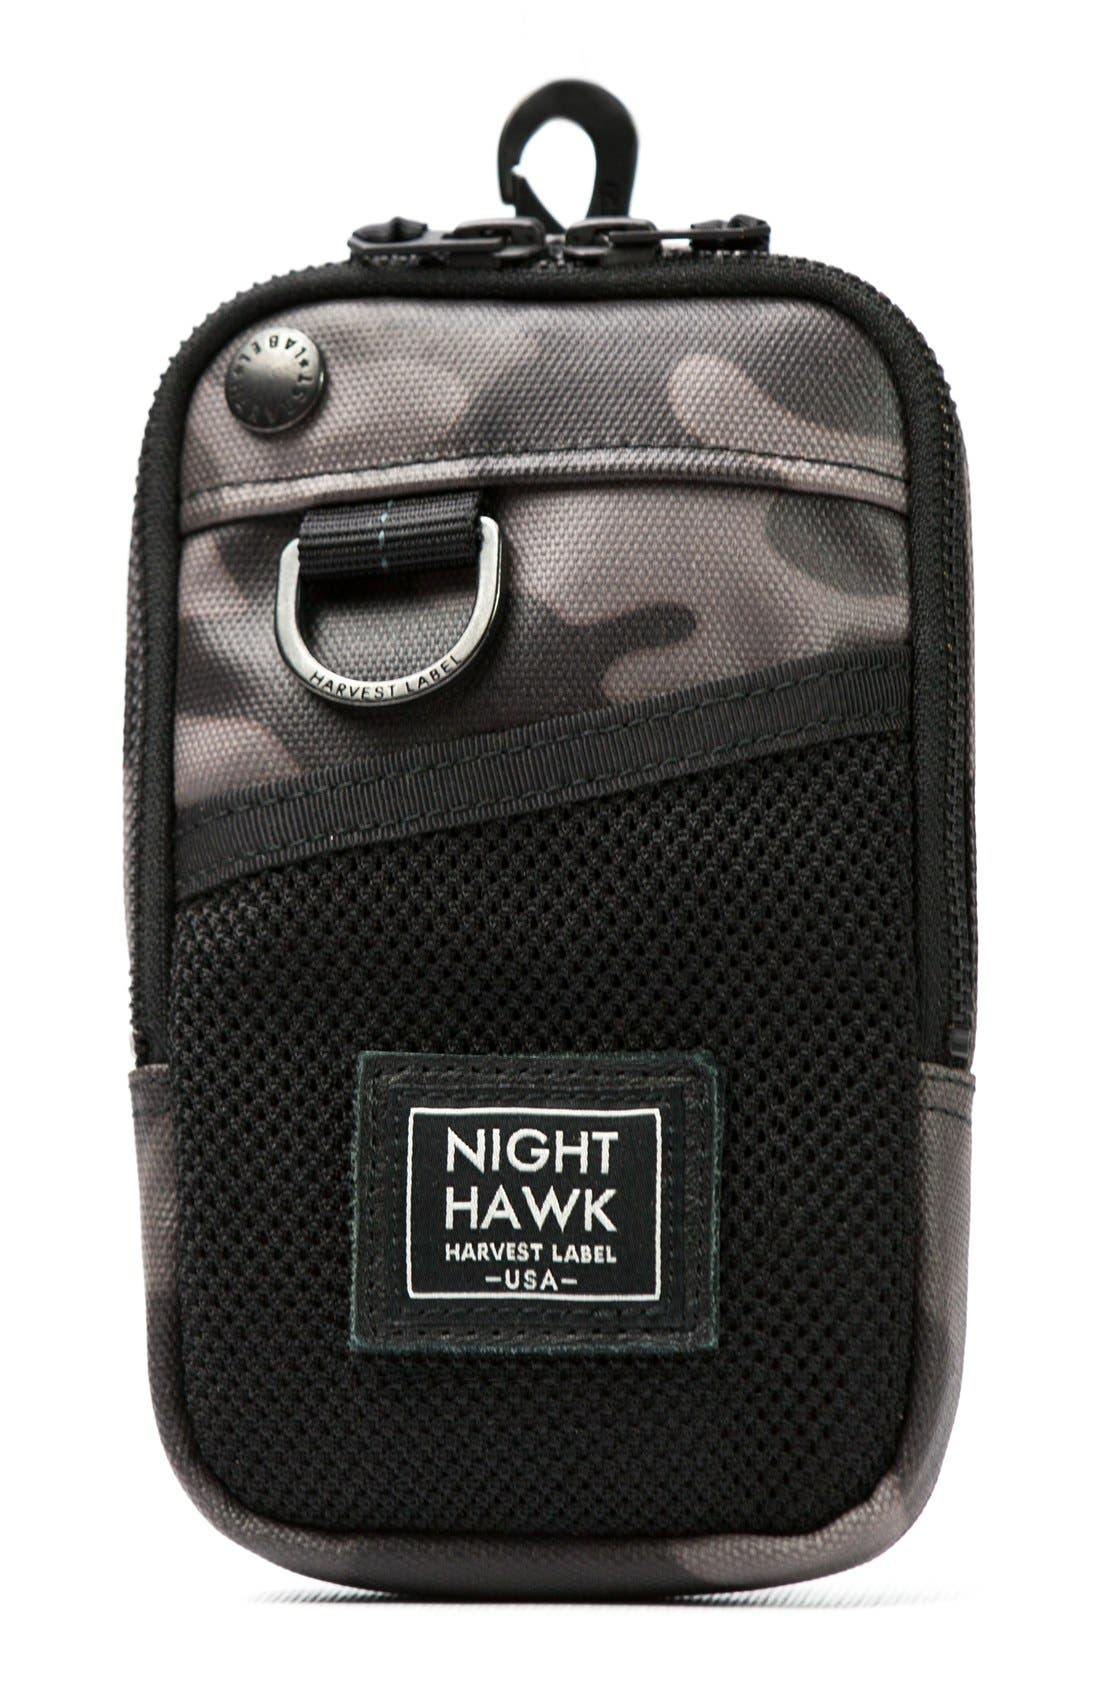 HARVEST LABEL NightHawk Smartphone Pouch